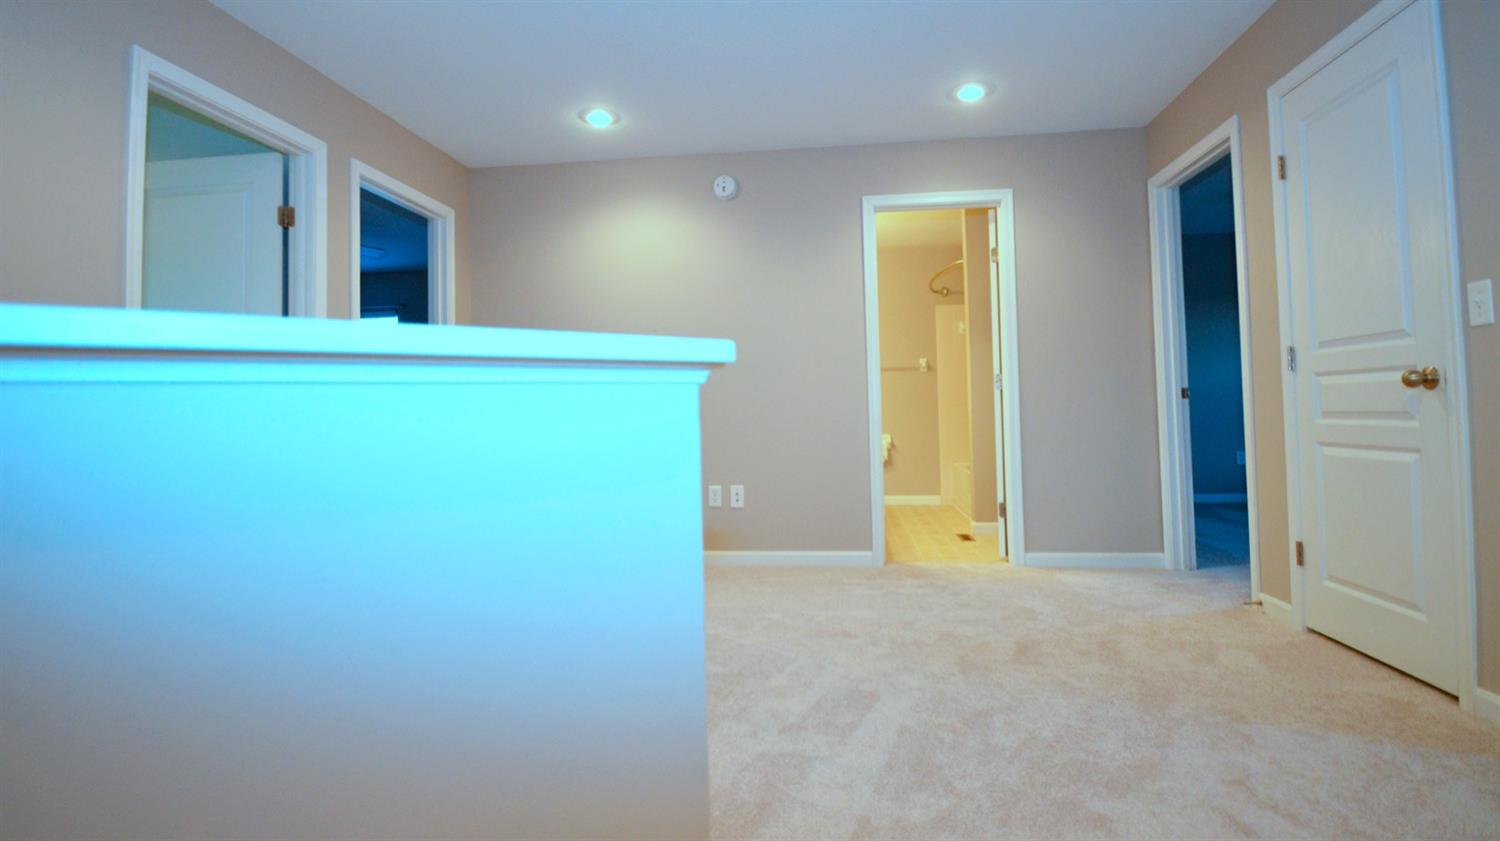 The home's 4 bedrooms, bath and step saving bedroom level laundry surrounding an open bonus hangout or study space.